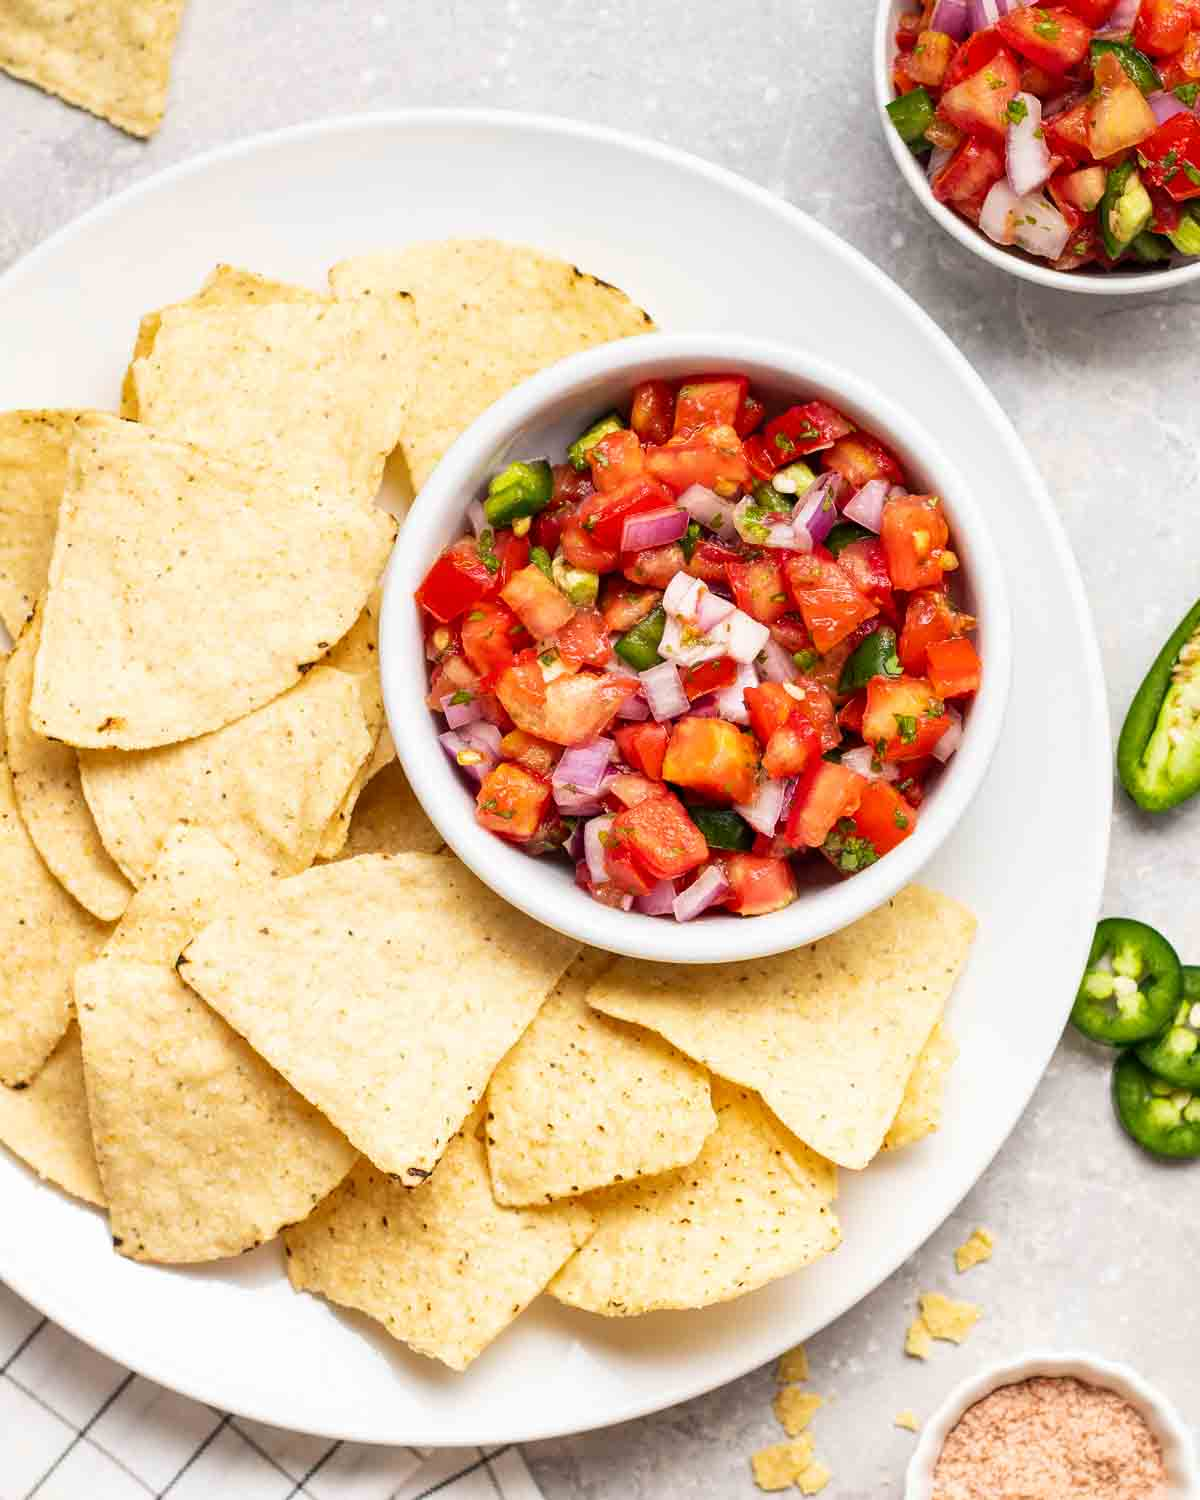 Salsa served with a plate of chips. There are jalapeno peppers and salt in the background.